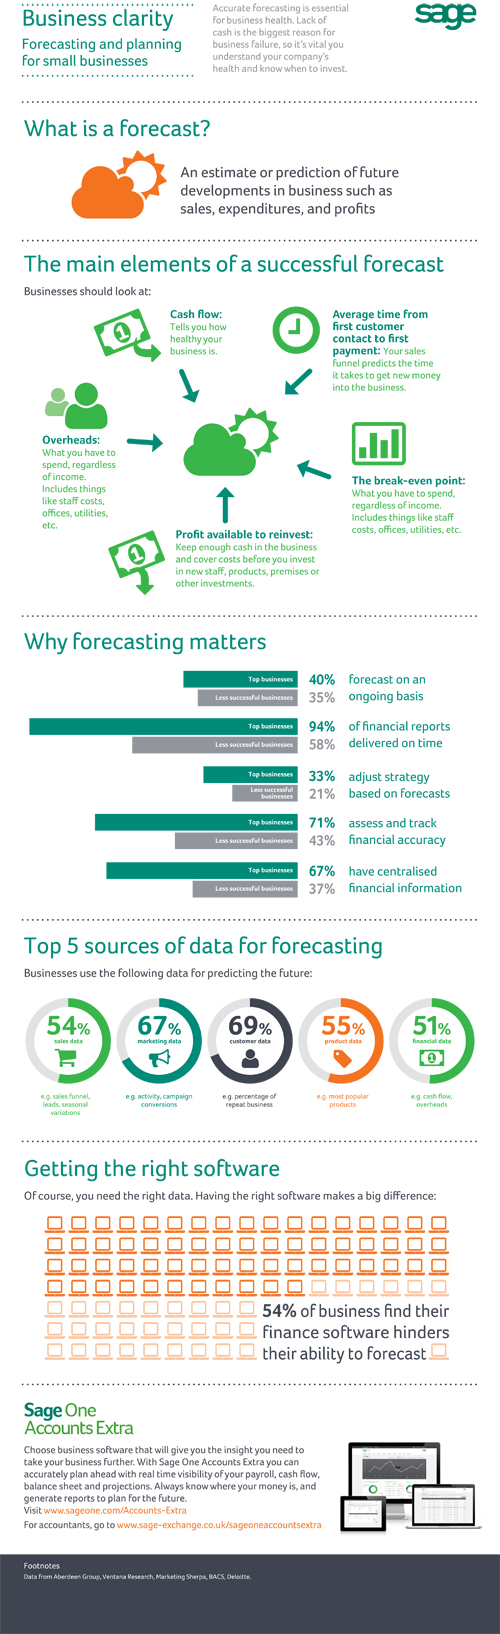 Forecasting and Planning for Small Businesses - Sage One UK